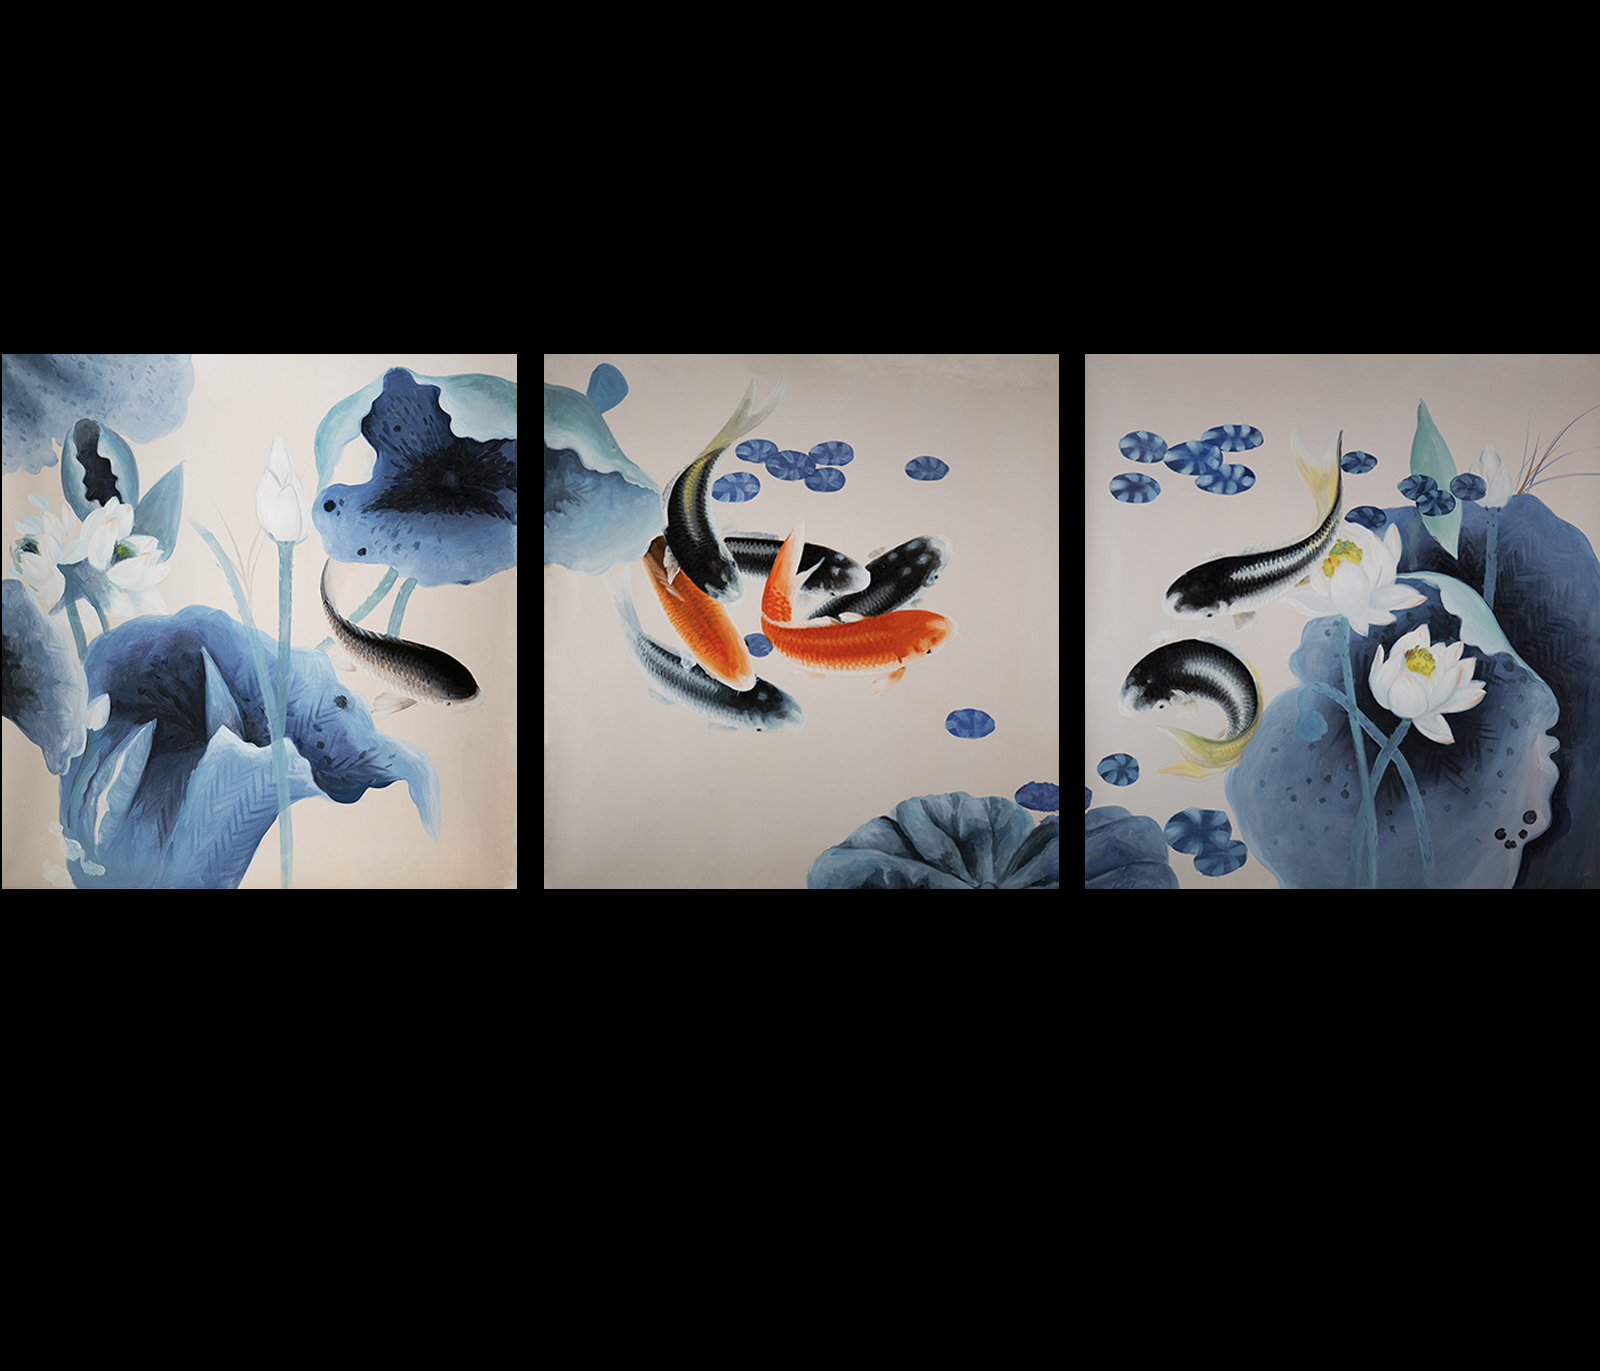 Koi fish painting contemporary art modern wall art d cor for 3 by 3 prints